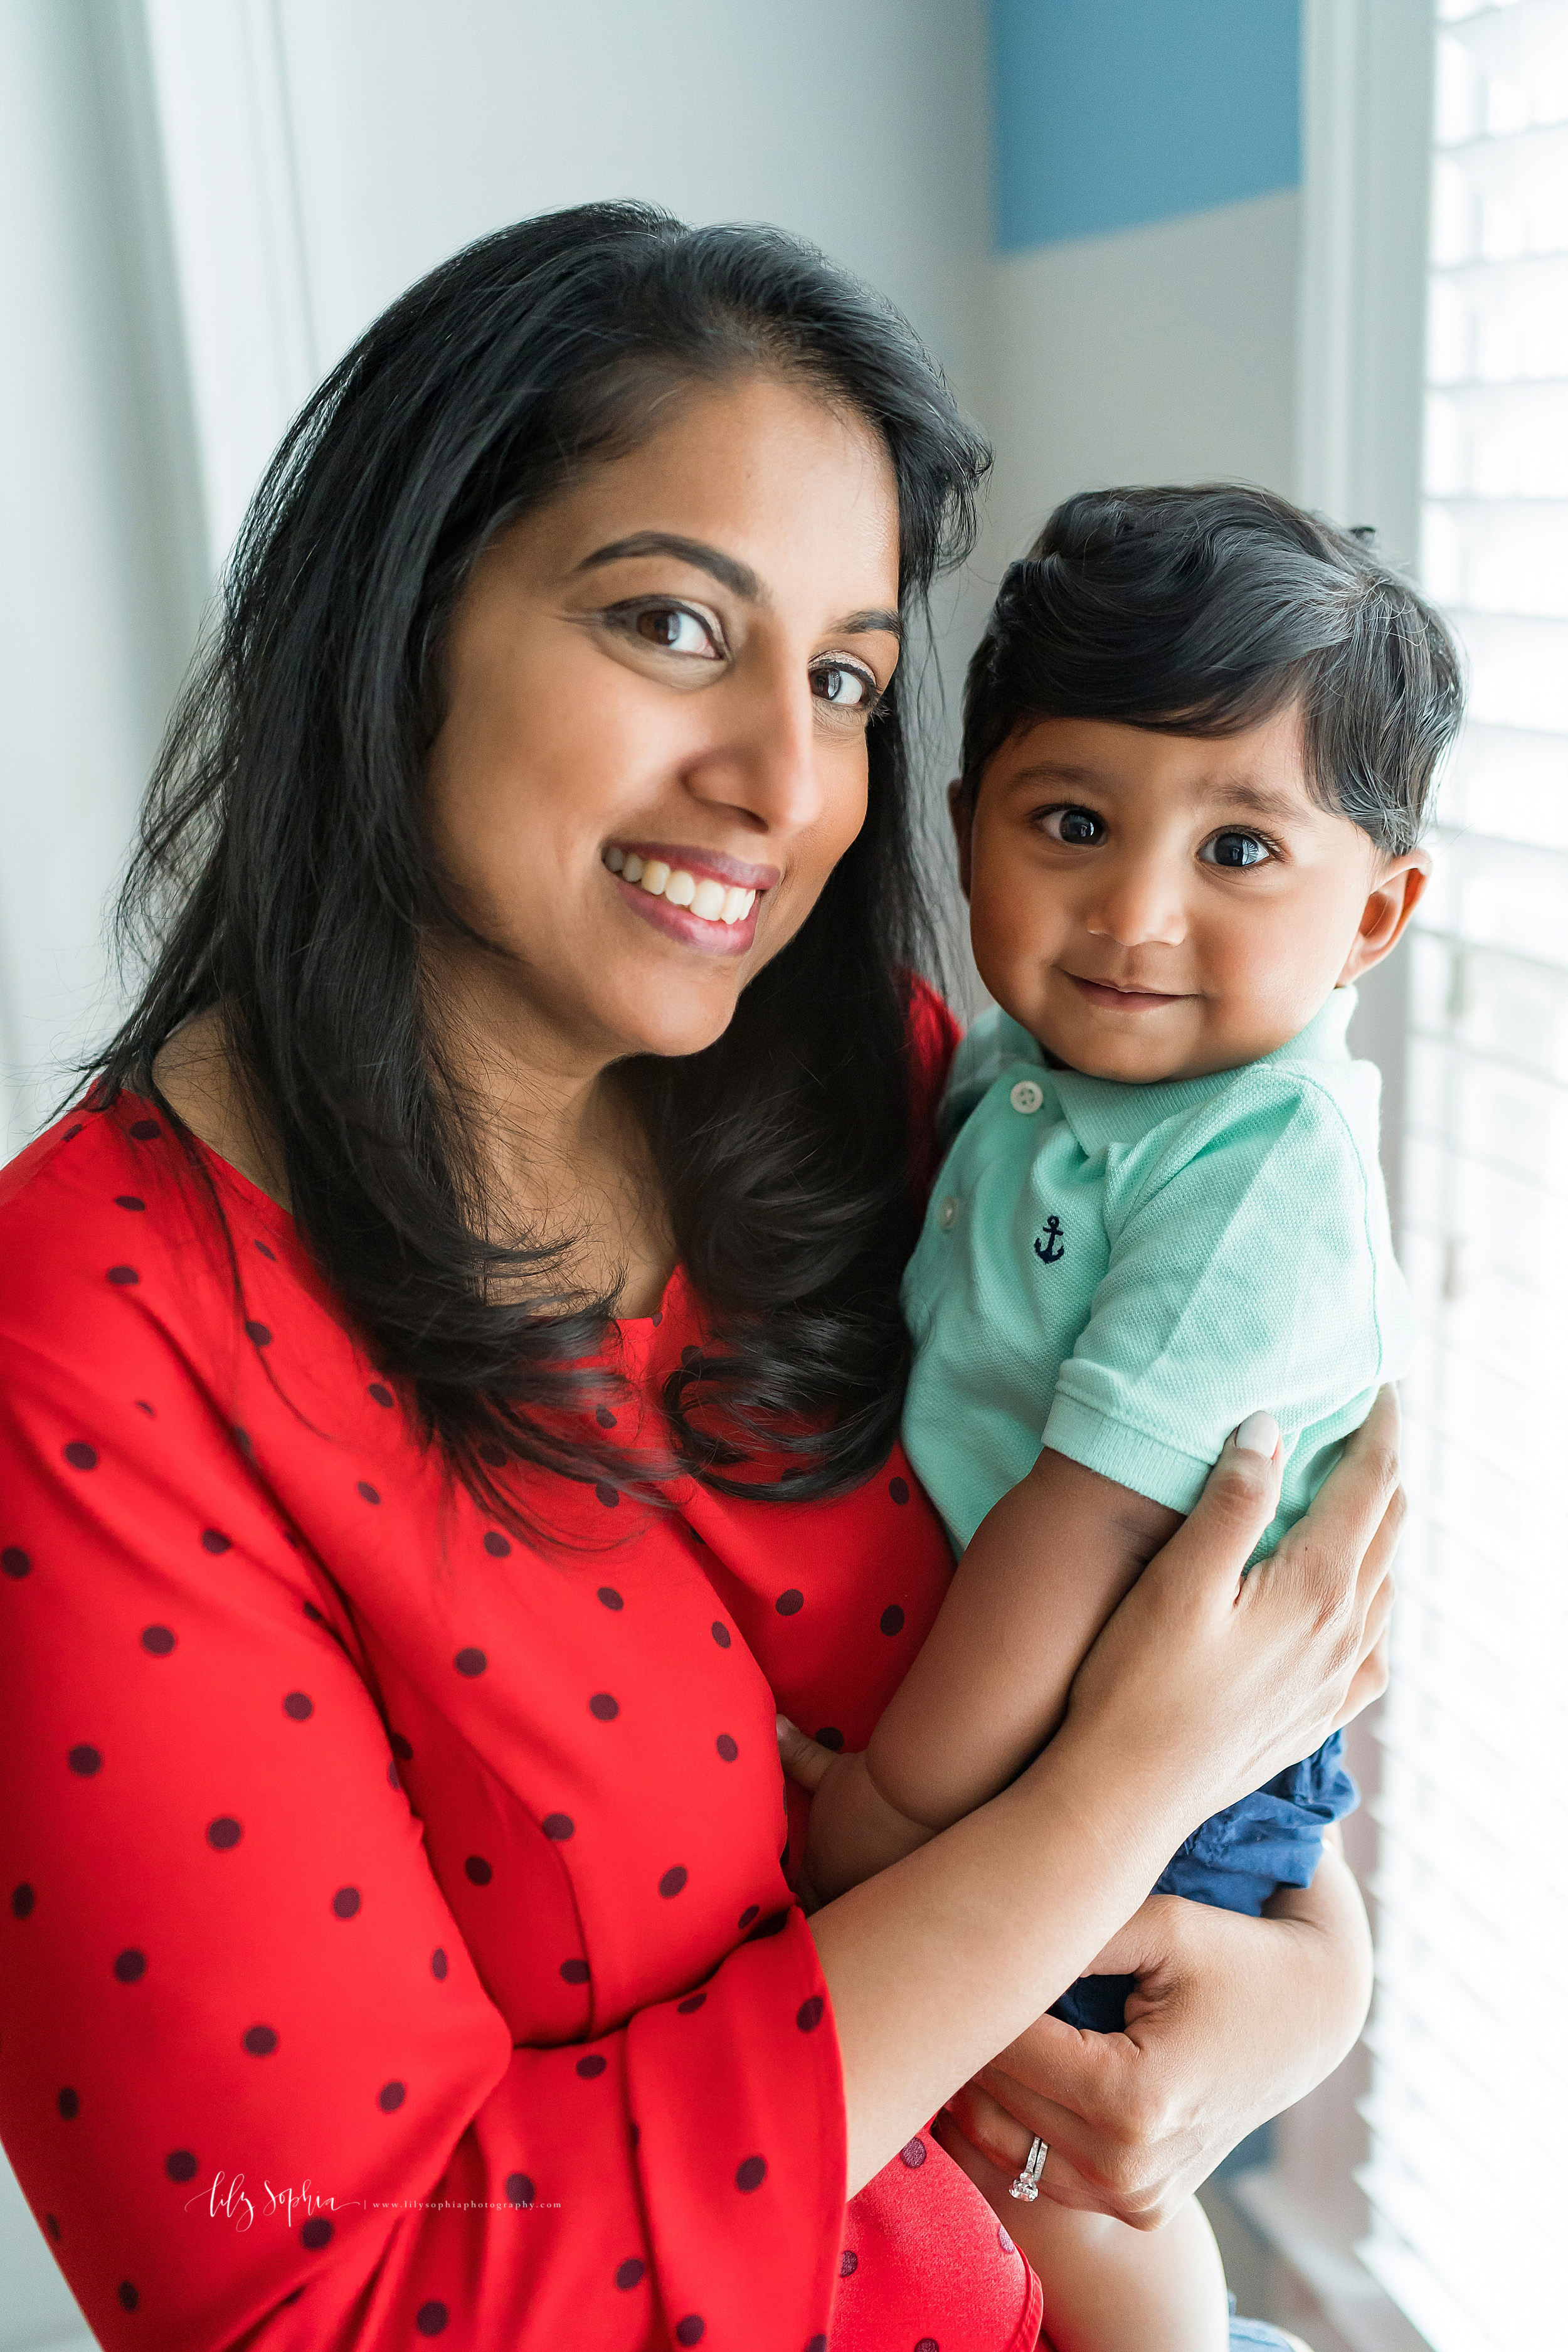 atlanta-brookhaven-east-cobb-marietta-candler-park-sandy-springs-buckhead-virginia-highlands-west-end-decatur-lily-sophia-photography-in-home-lifestyle-session-eight-month-milestone-indian-family_1664.jpg